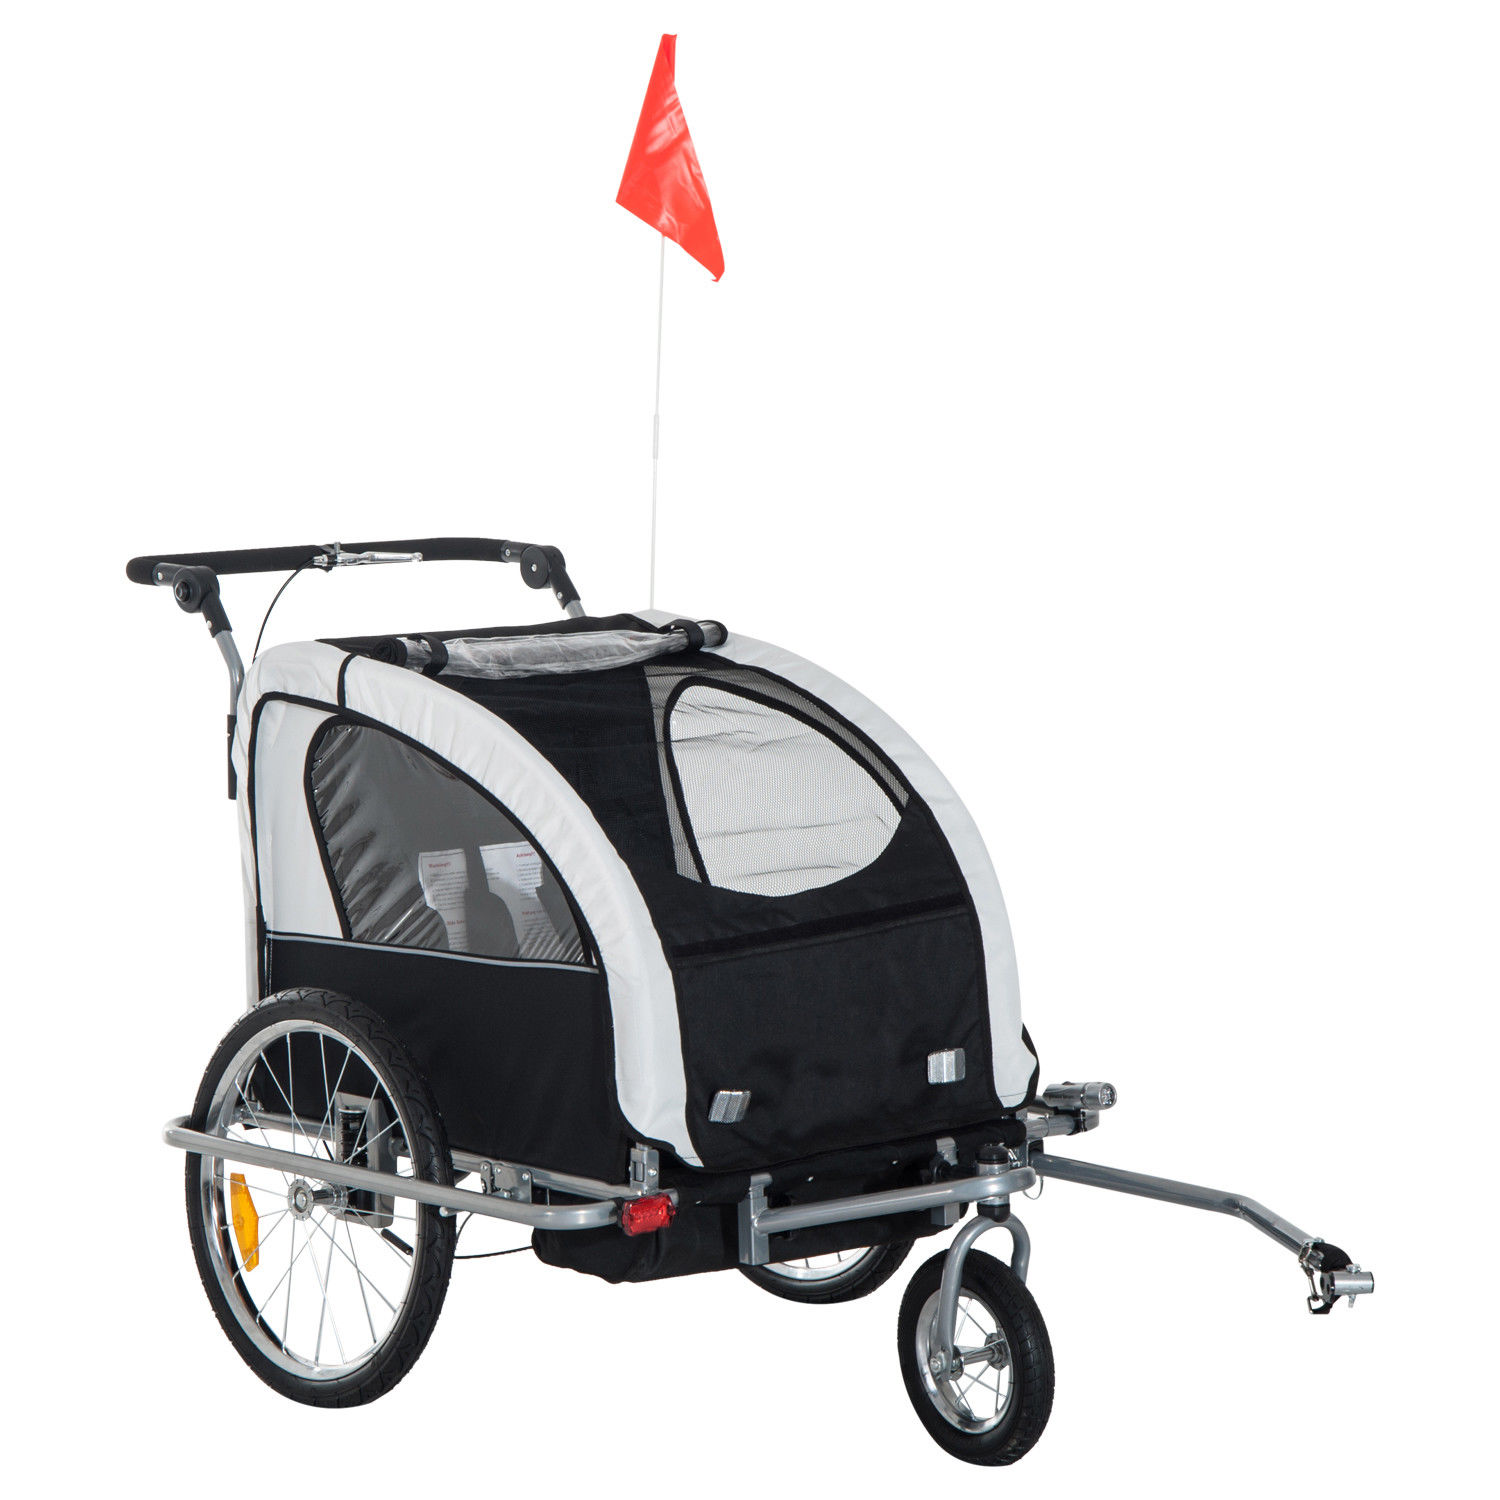 2-Seater-Child-Bike-Trailer-Kids-Carrier-Safety-Harness-Baby-Stroller-Jogger thumbnail 19